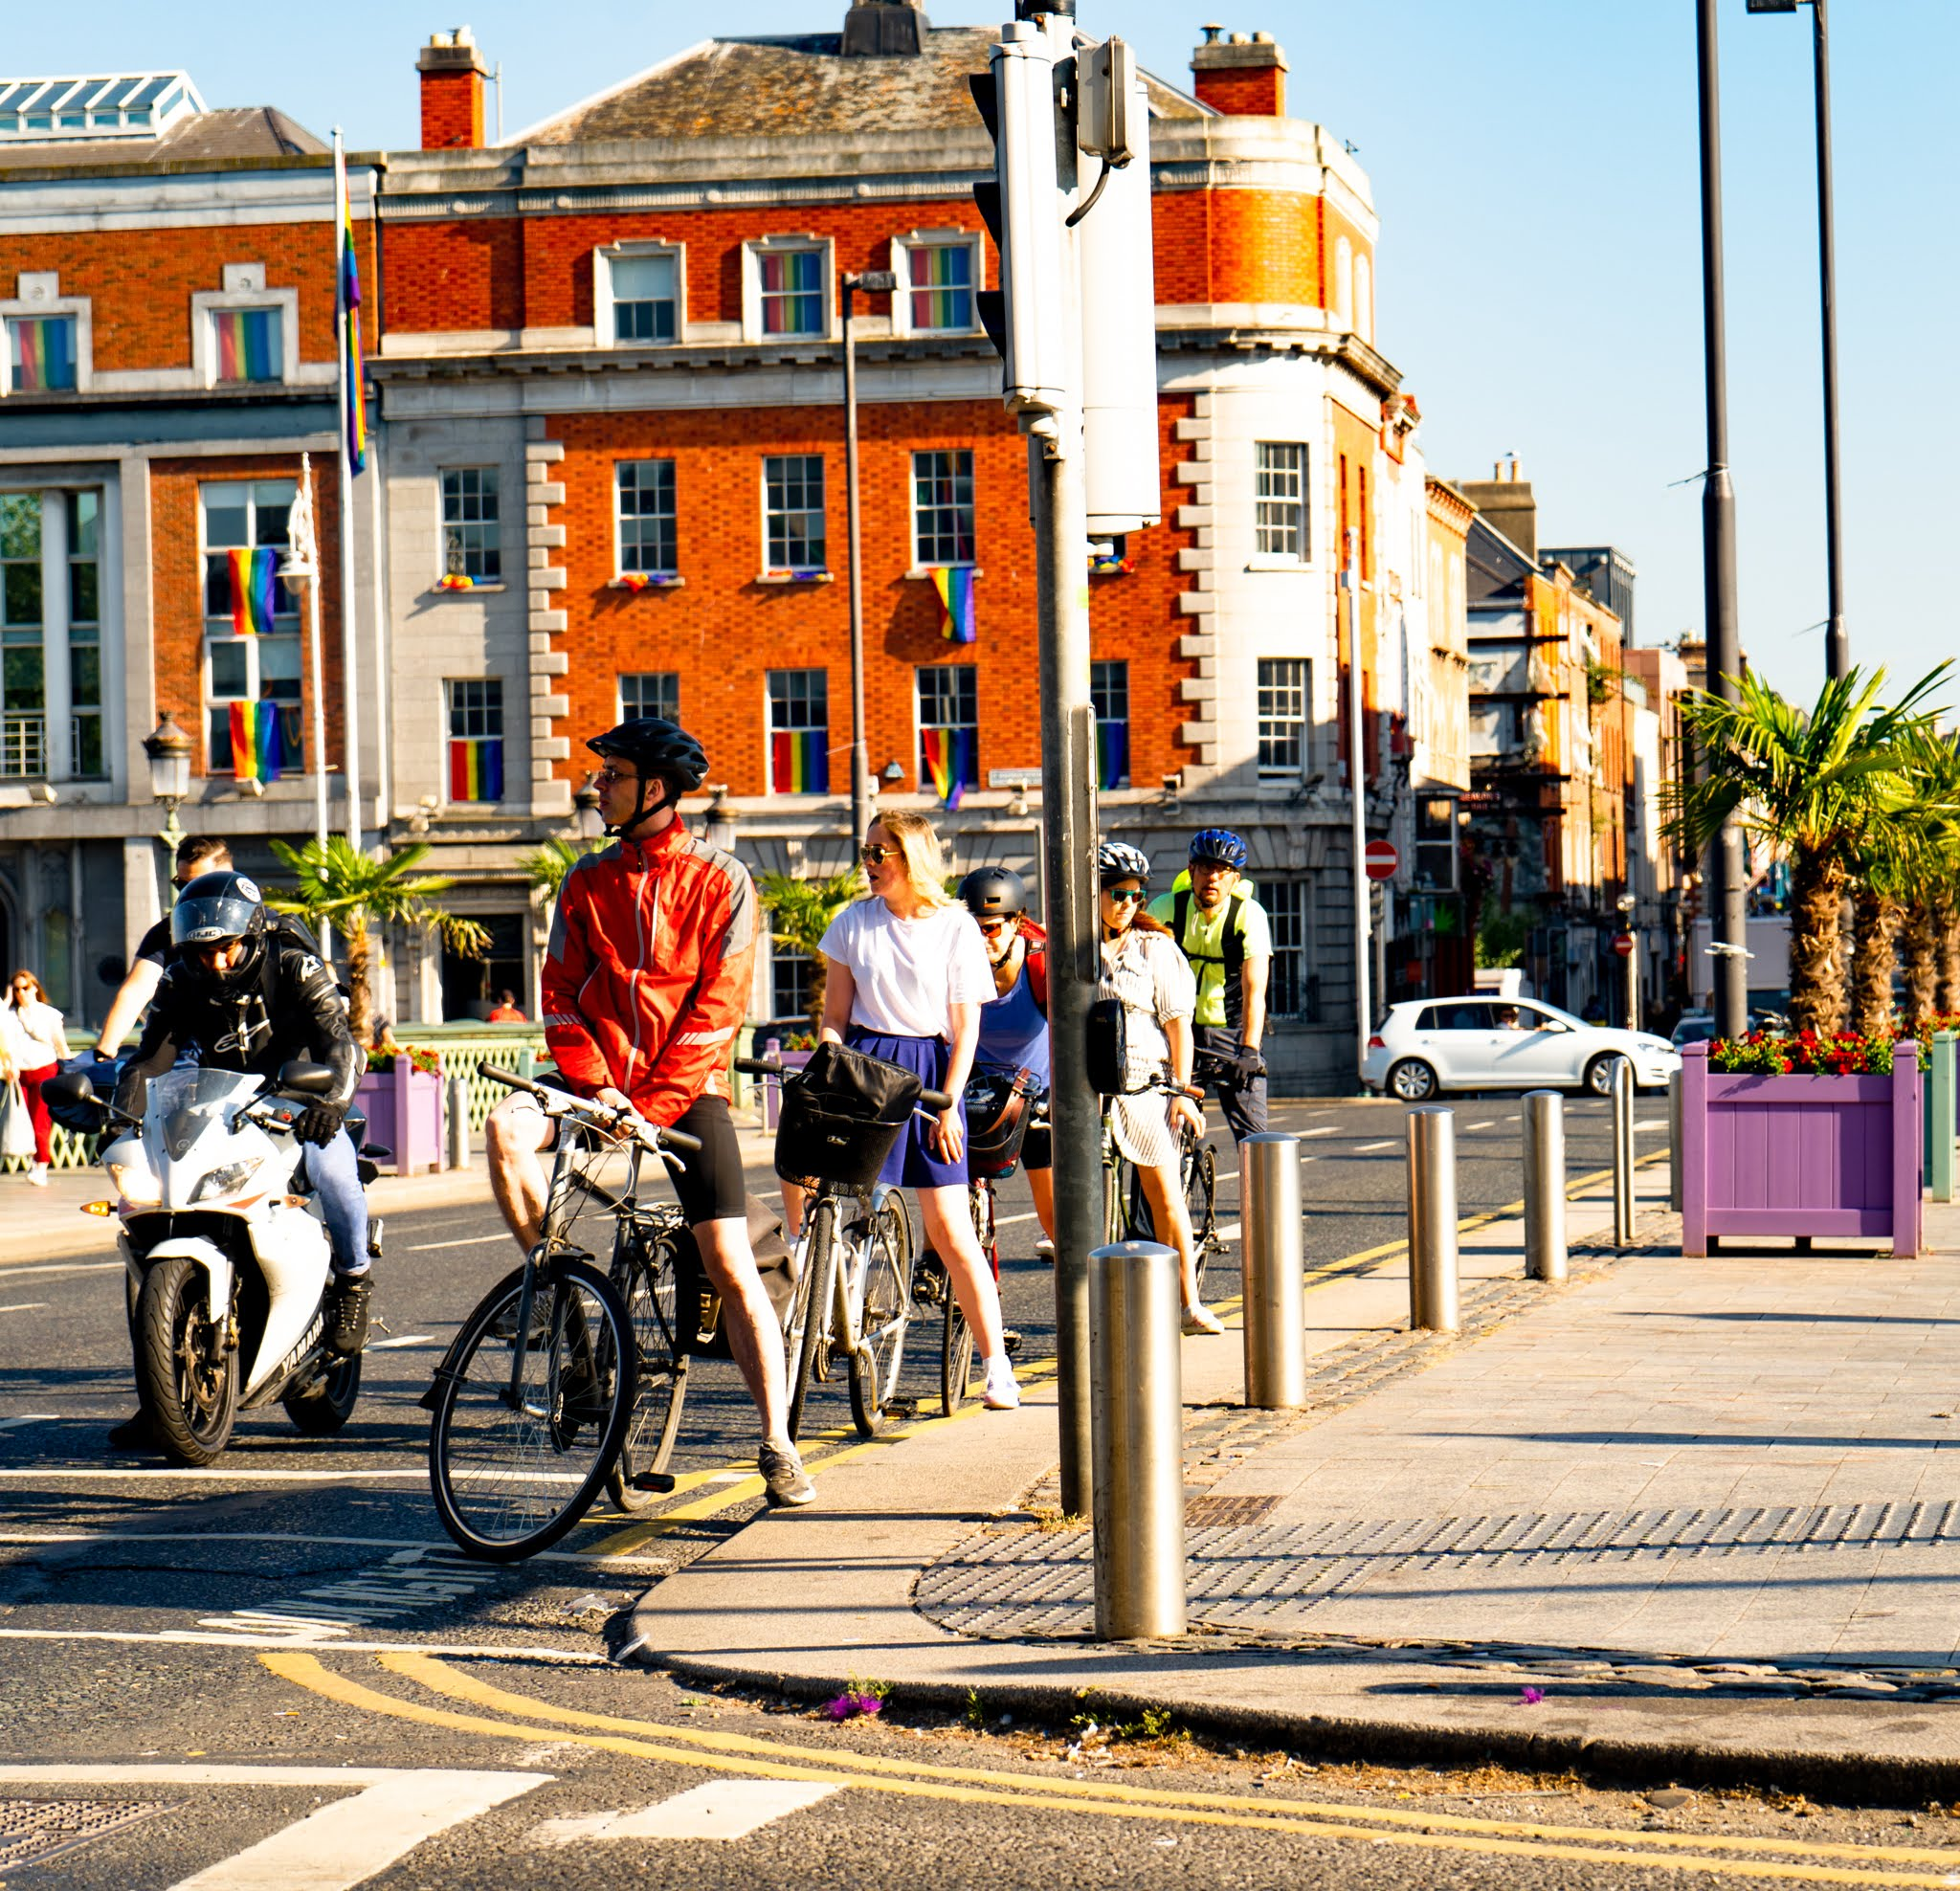 uprooted-traveler-dublin-dublin-vegan-guide-48-hours-bicycle-city-center.jpg